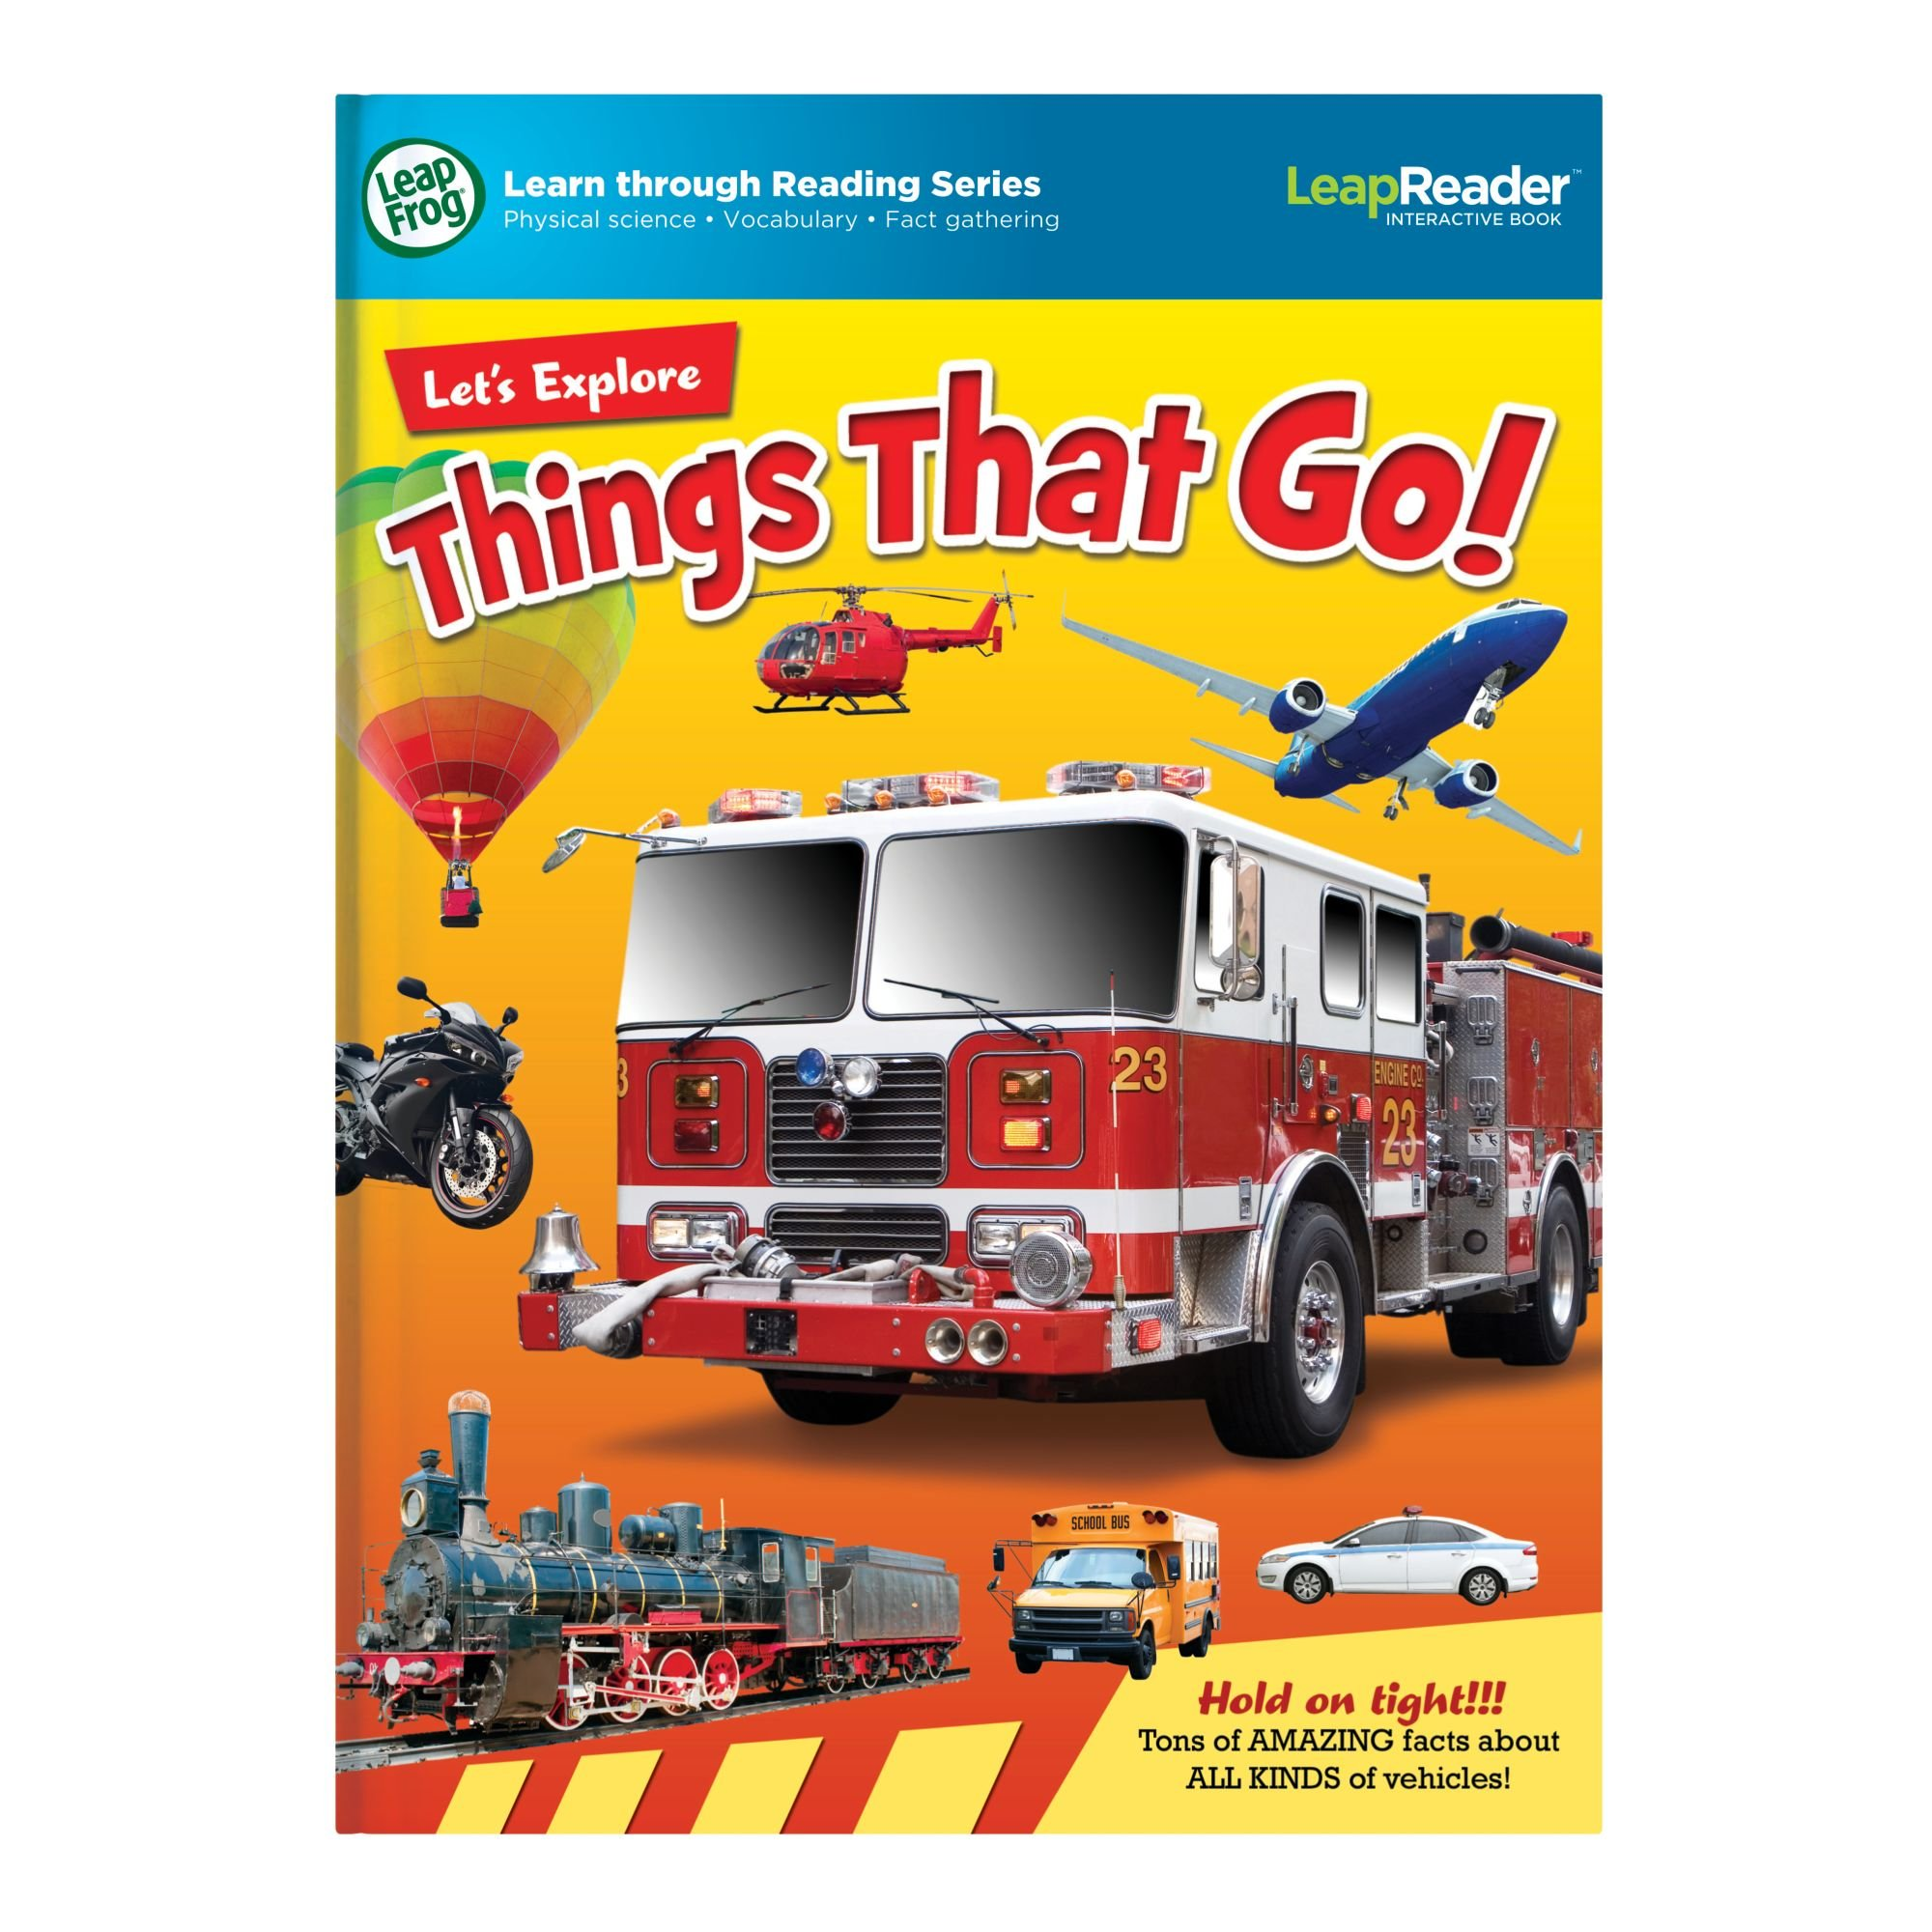 LeapFrog LeapReader Book: Let's Explore Things That Go! (works with Tag) by LeapFrog (Image #7)